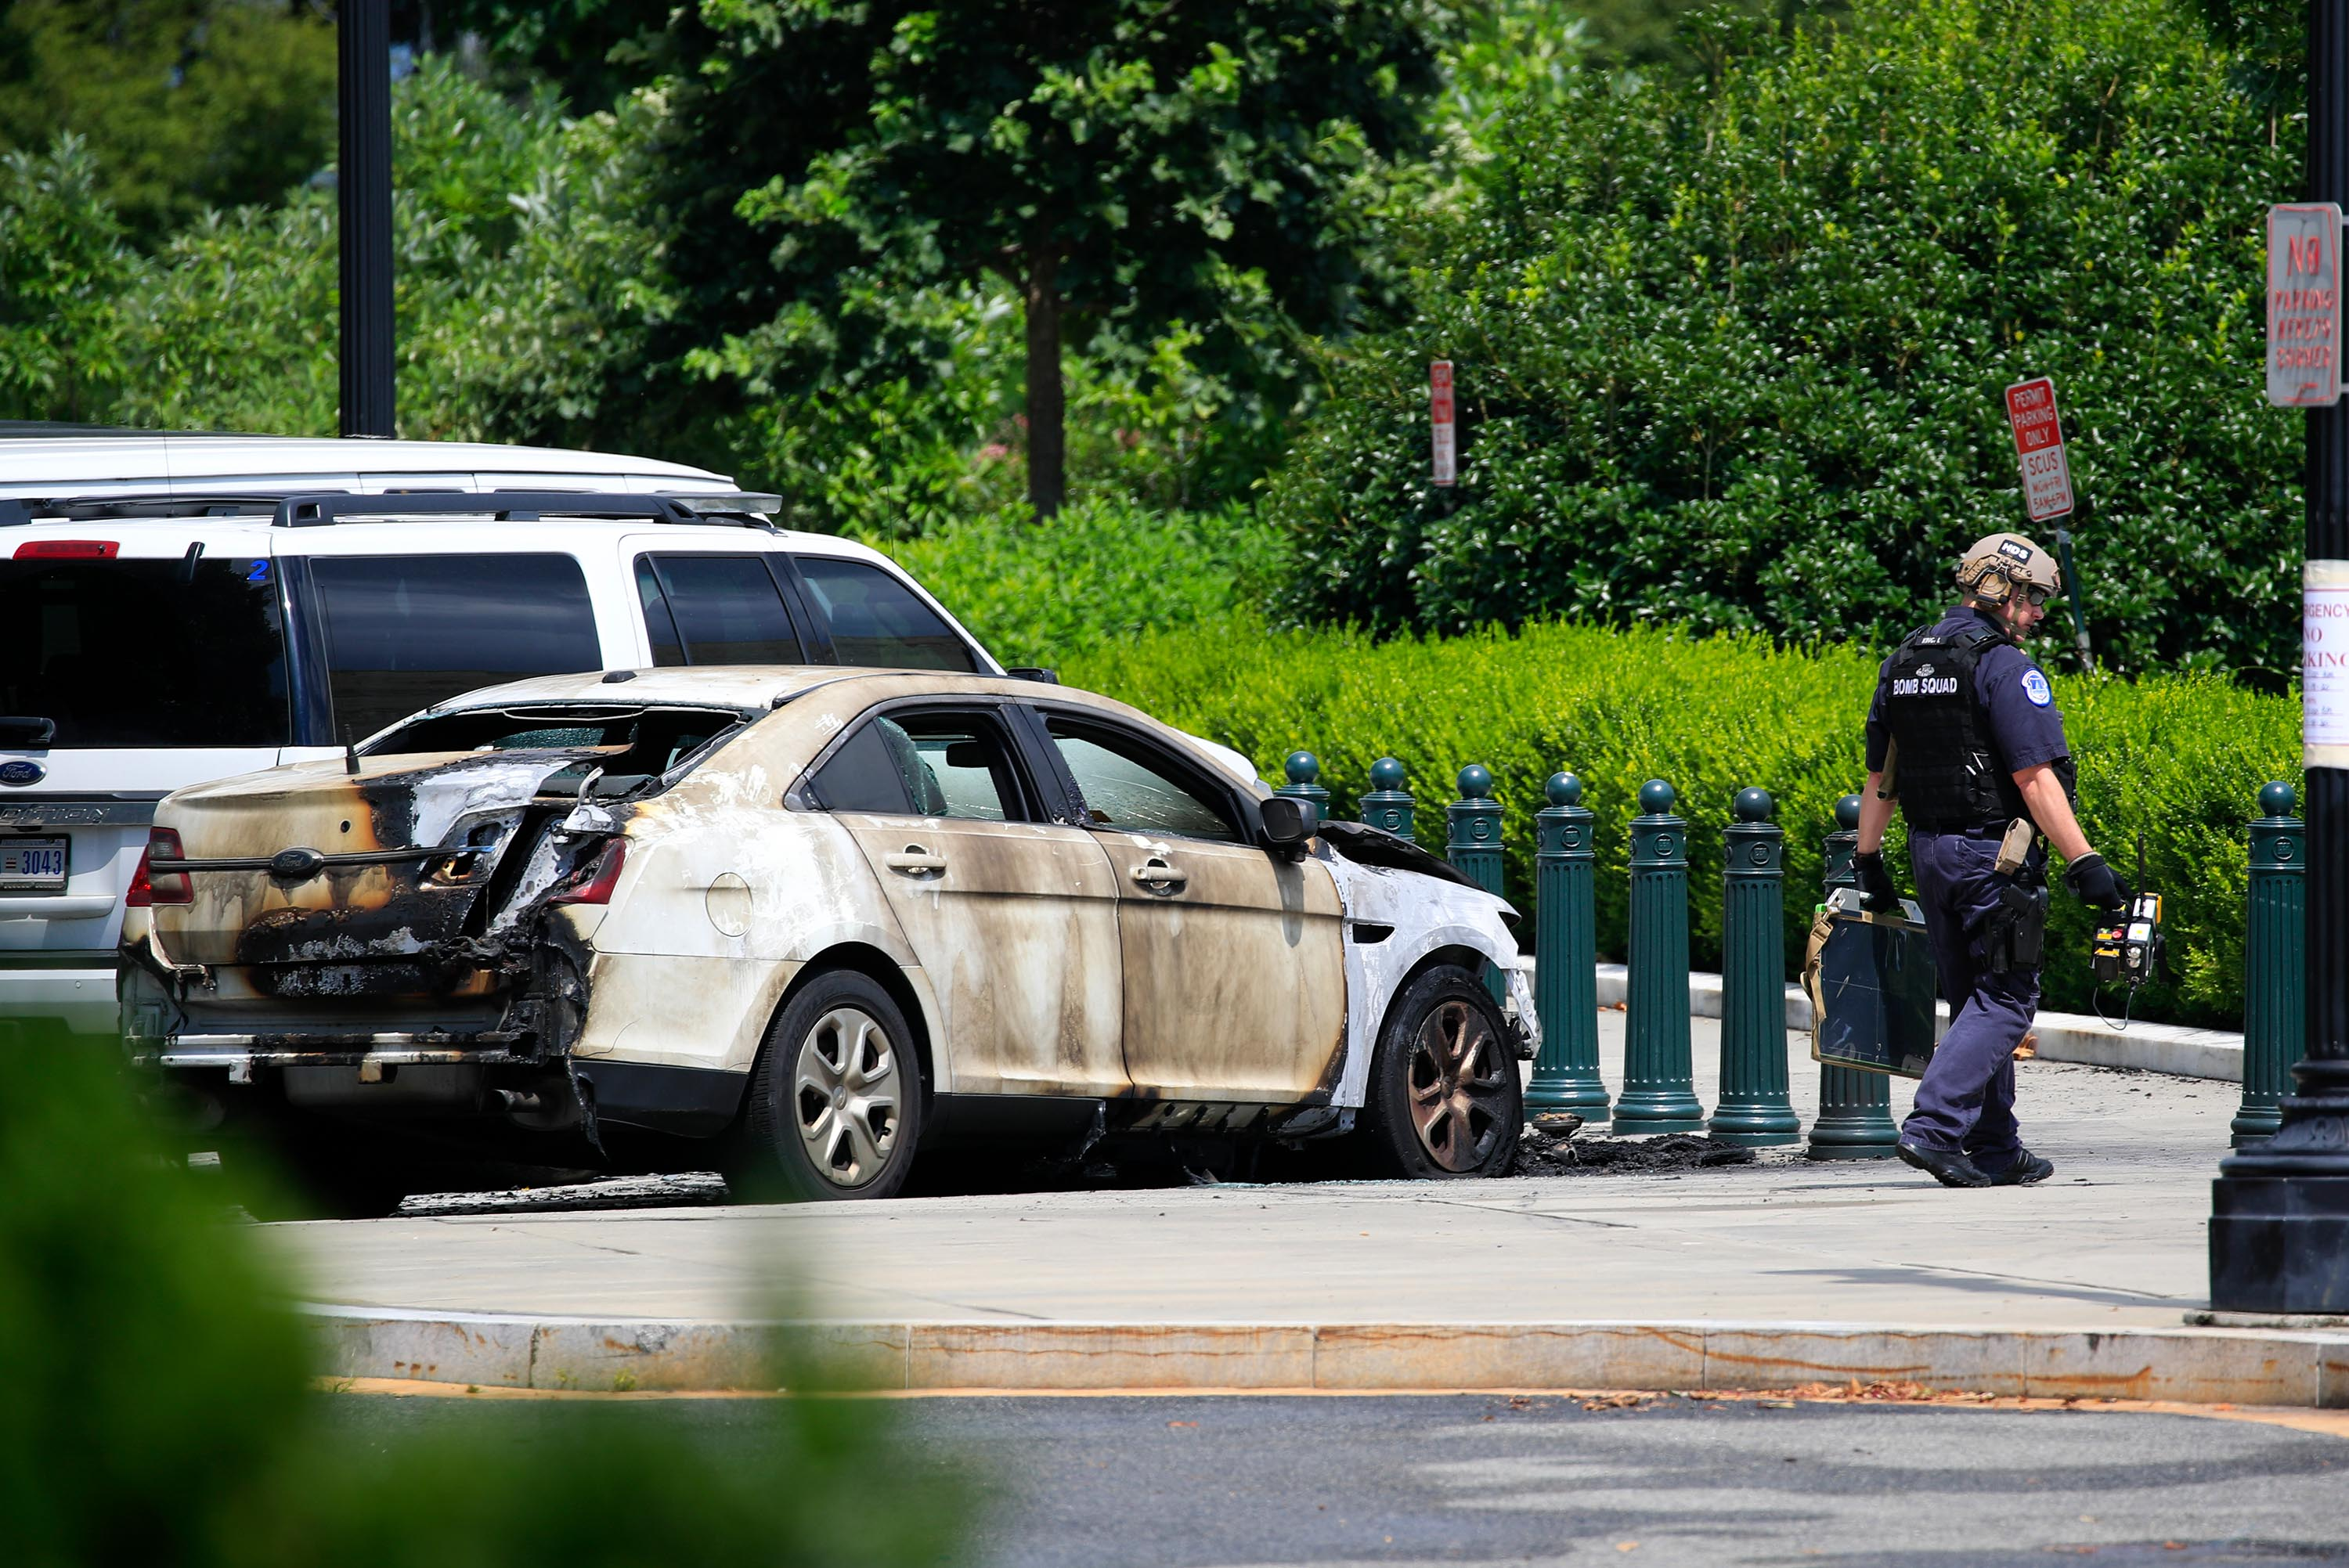 Man in custody after Supreme Court police vehicle set on fire